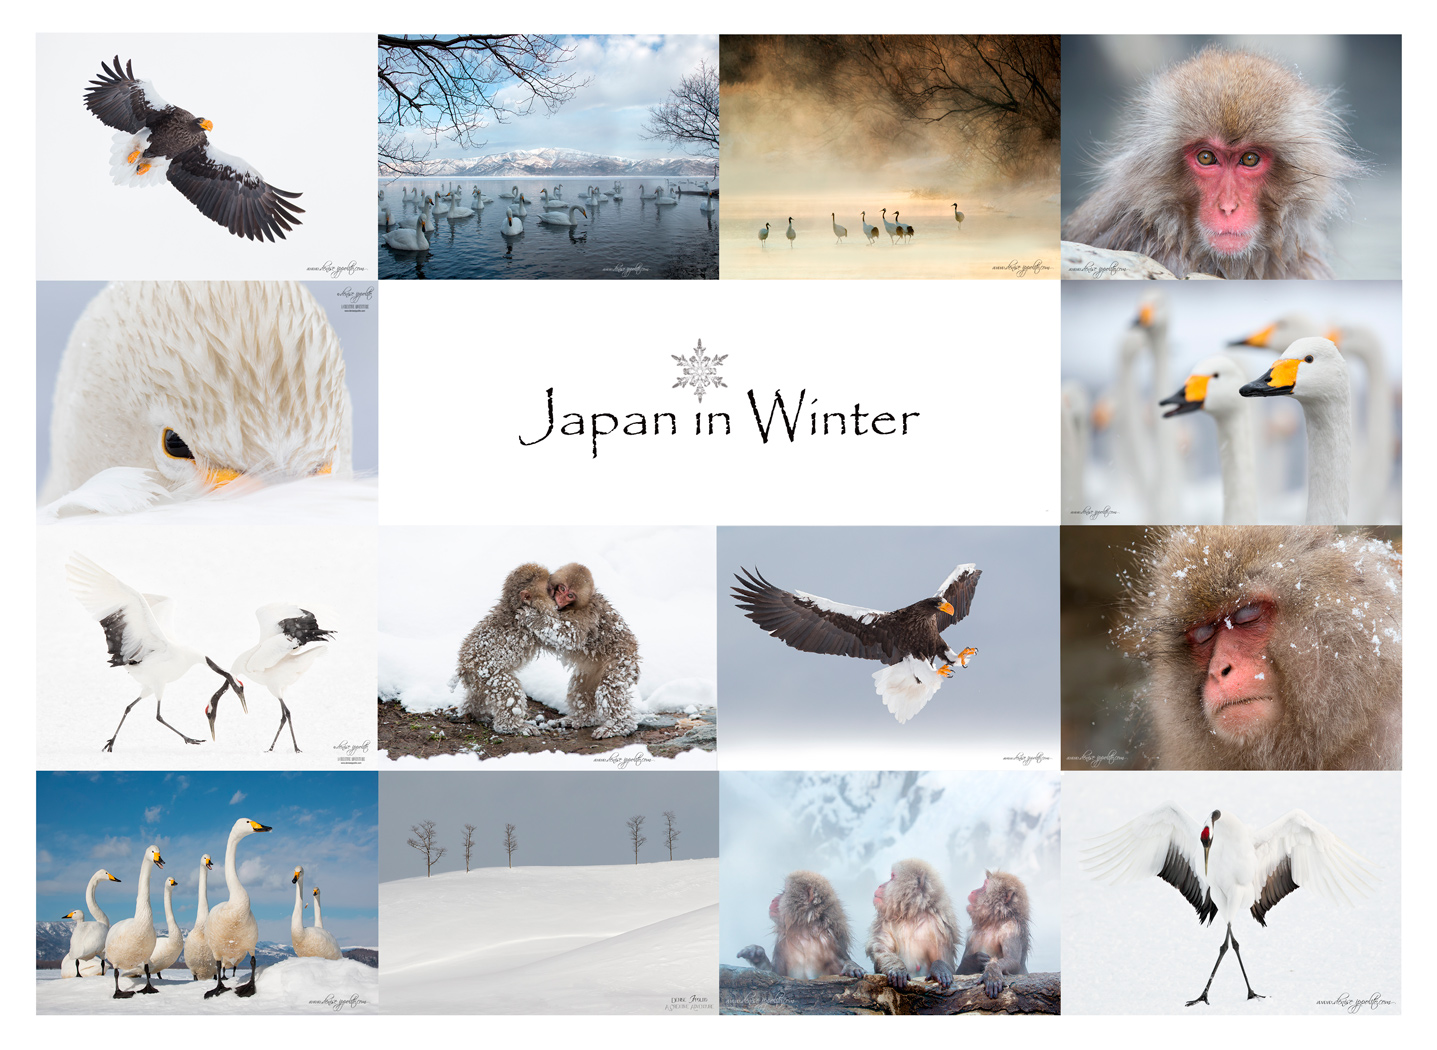 Japan-in-Winter.jpg